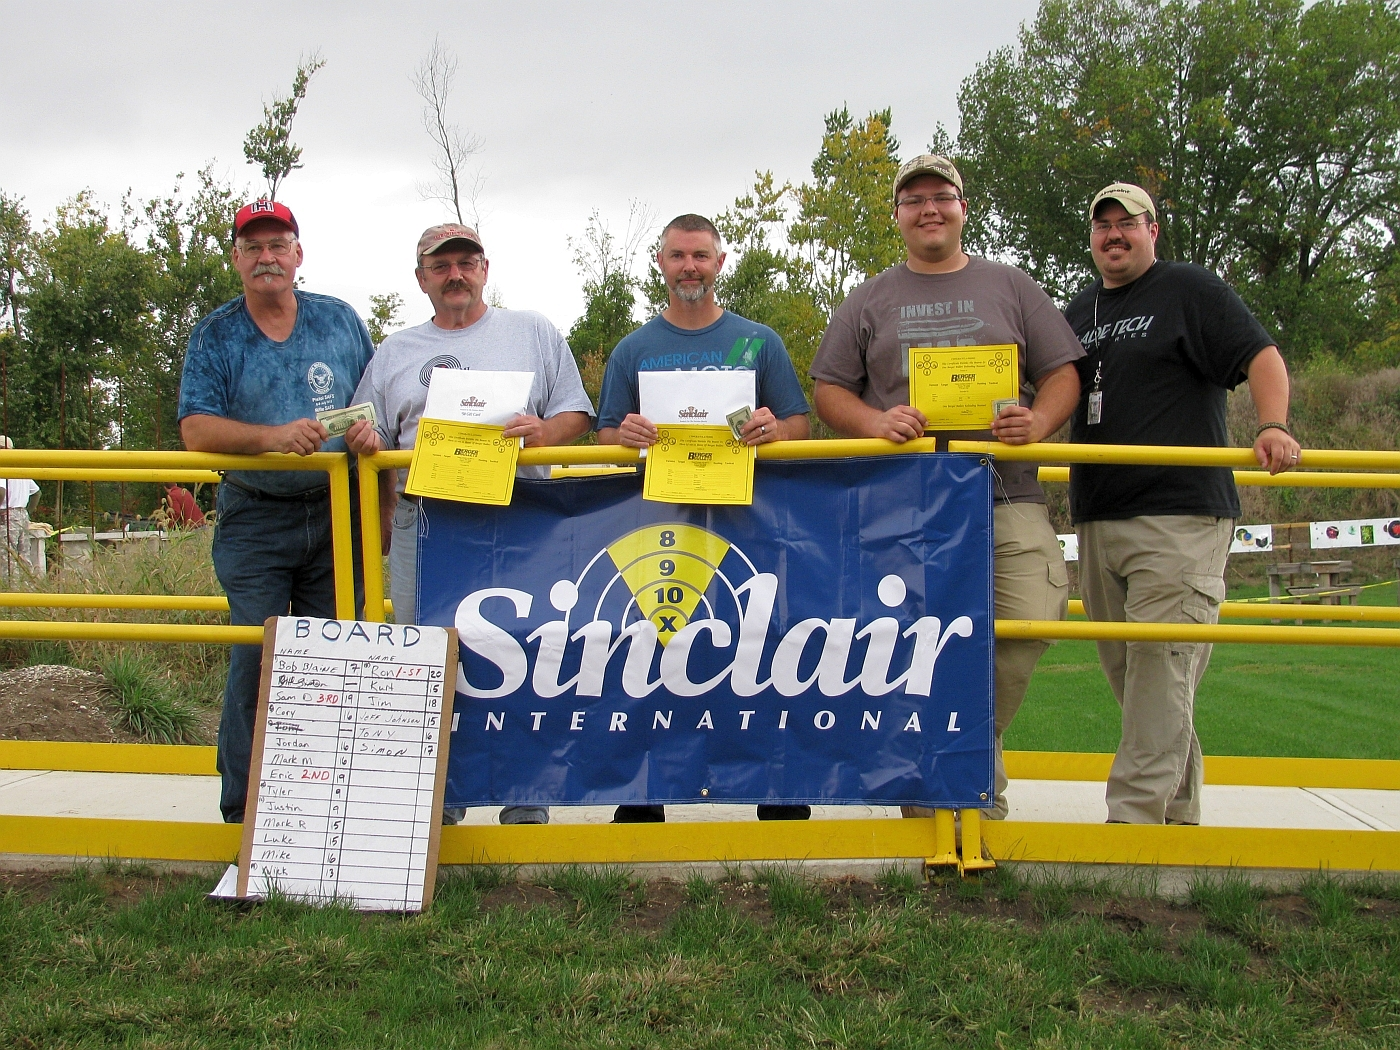 """From Left to Right, Match Director - Mark ""Mountain Man"" McKee, 1st Place – Ron Dague, 2nd Place – Eric, 3rd Place – Sam D., Mike Swaidner, General Manager – Hillside Shooting Sports."""